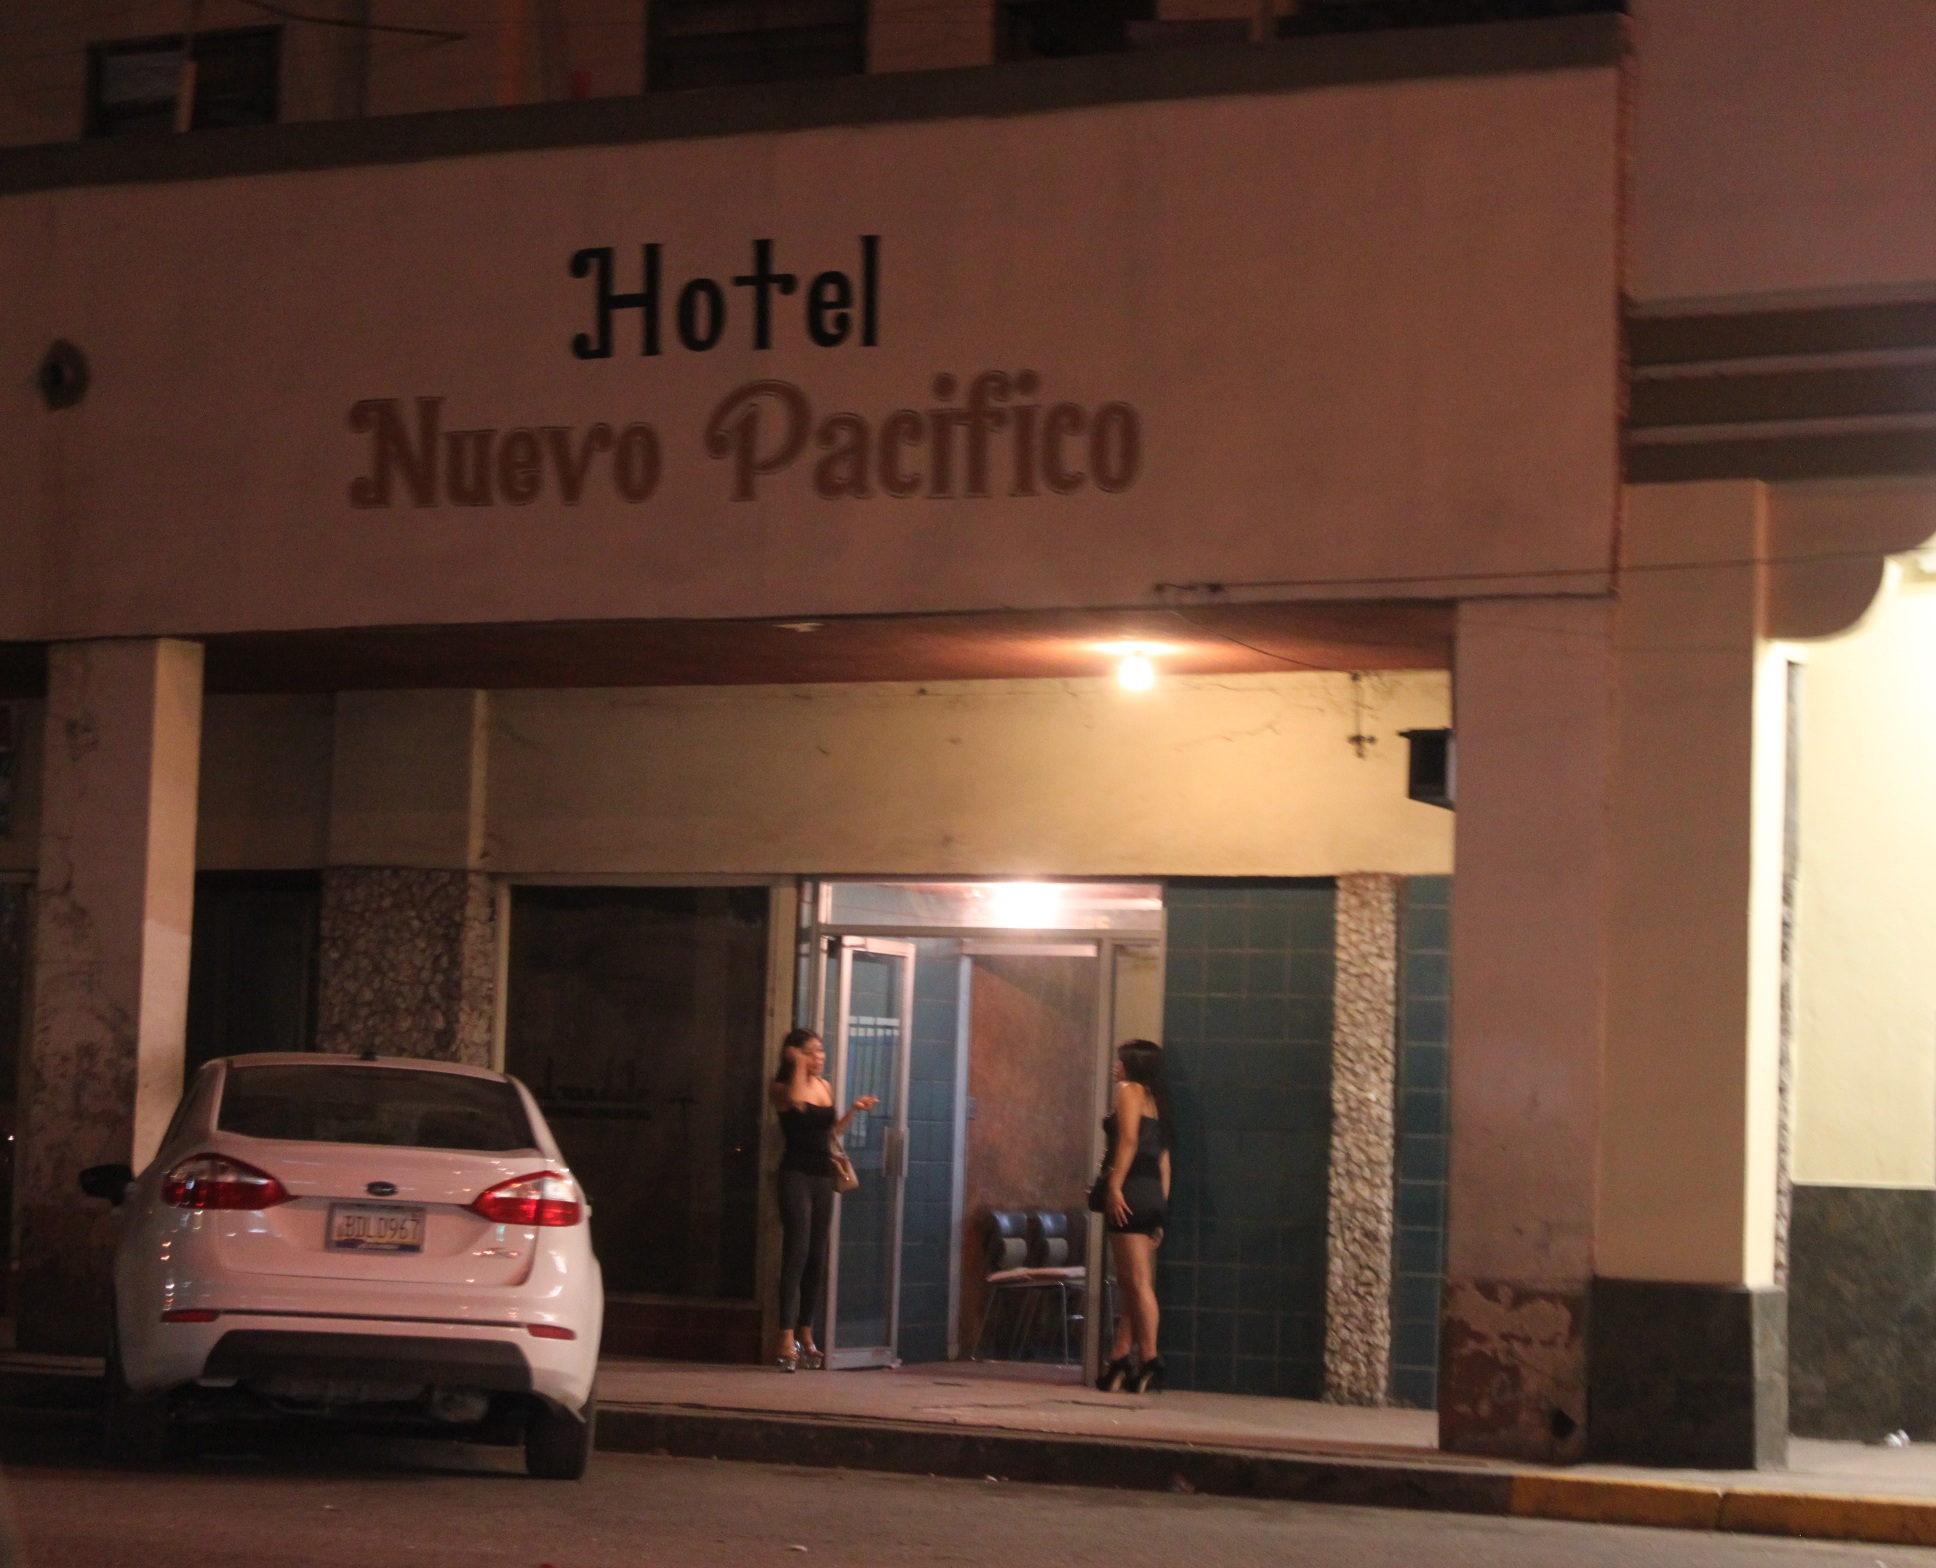 prostituta video prostitutas en hoteles